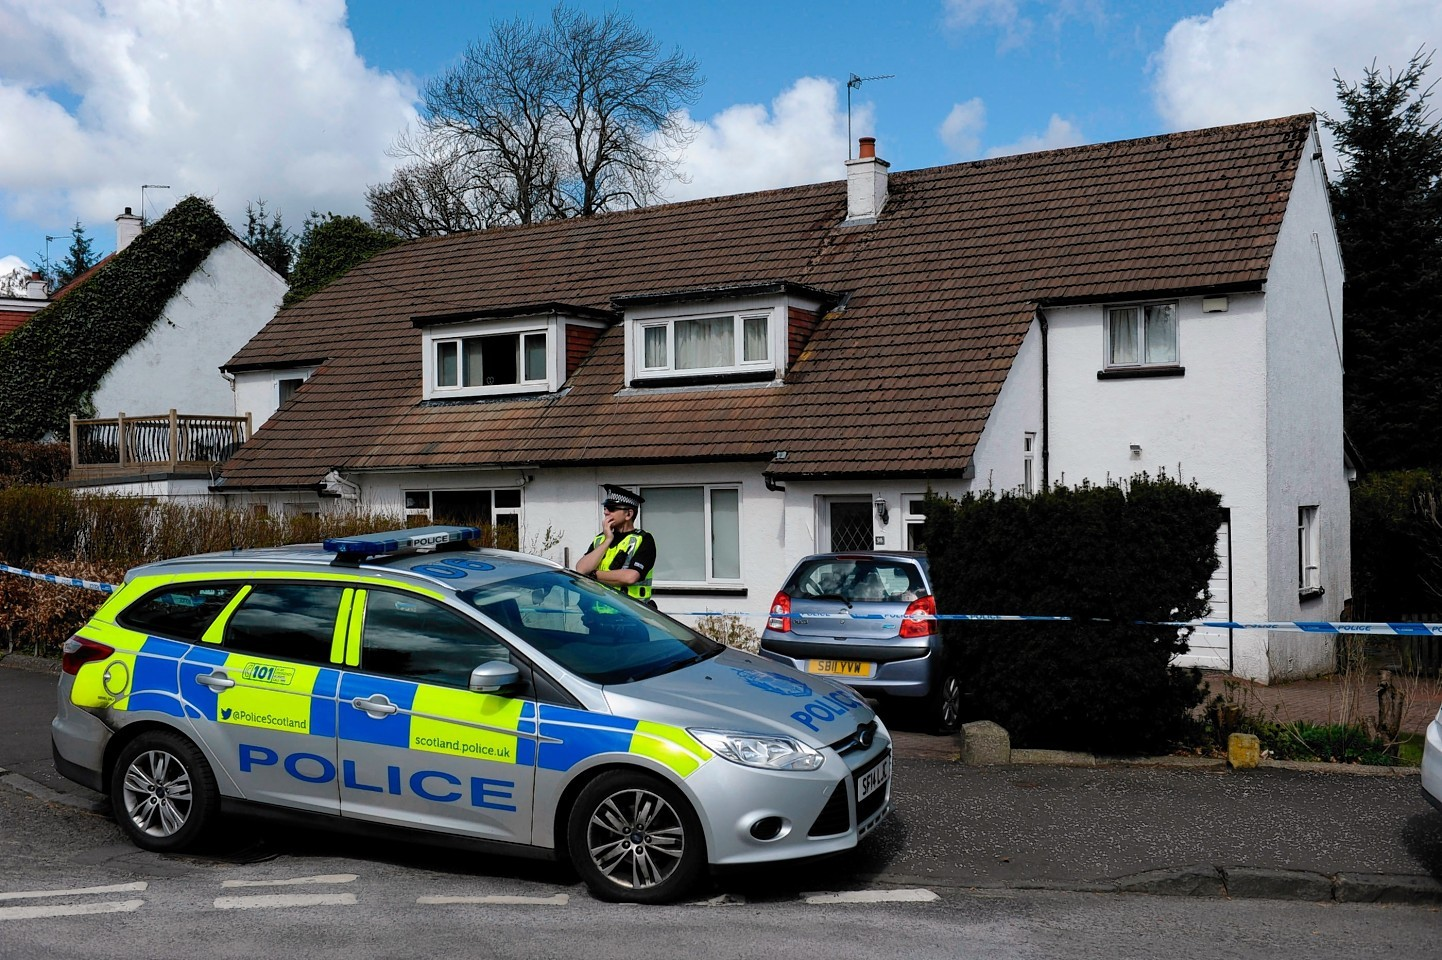 Police on the scene of the house where the attack took place